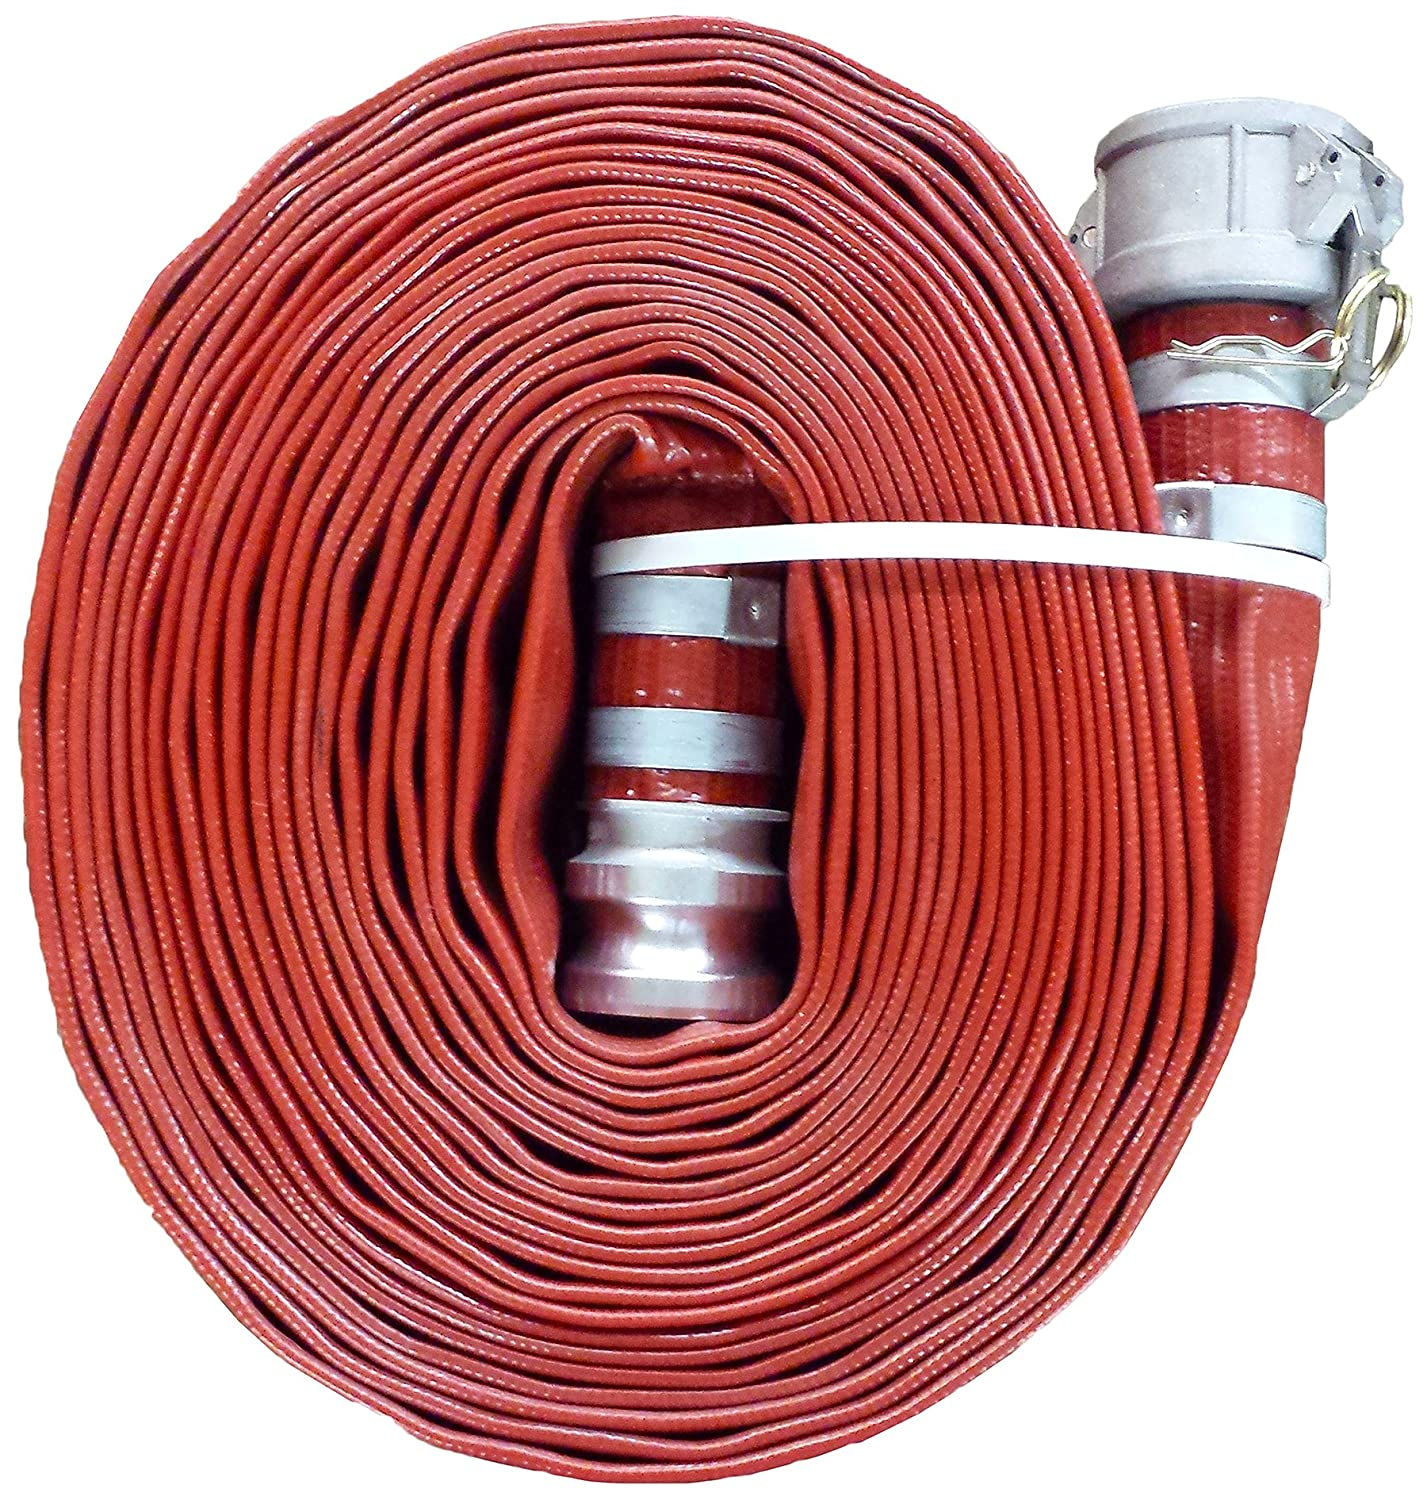 JGB Enterprises A008-0241-3525 Eagle Red PVC Discharge Hose, 1-1/2